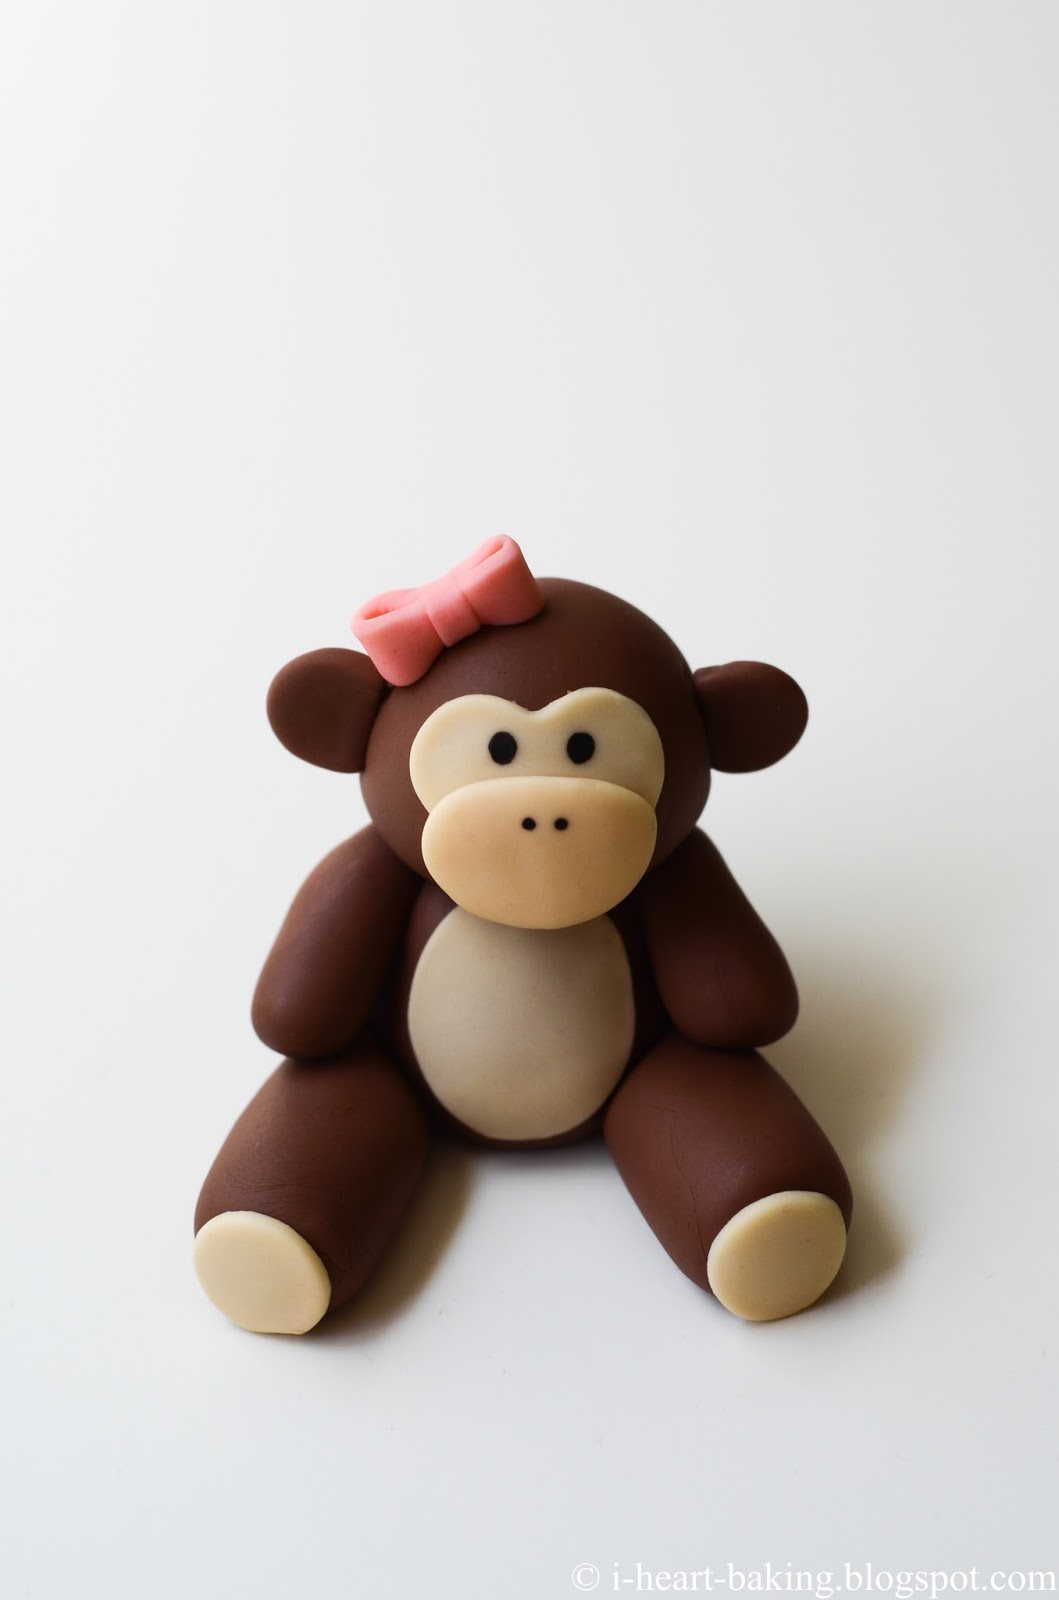 Monkey For Baby Shower Part - 49: Since The Baby Would Be Born In The Year Of The Monkey, She Wanted A Monkey  Cake, So A Few Weeks Before The Baby Shower I Started Making A Little  Fondant ...